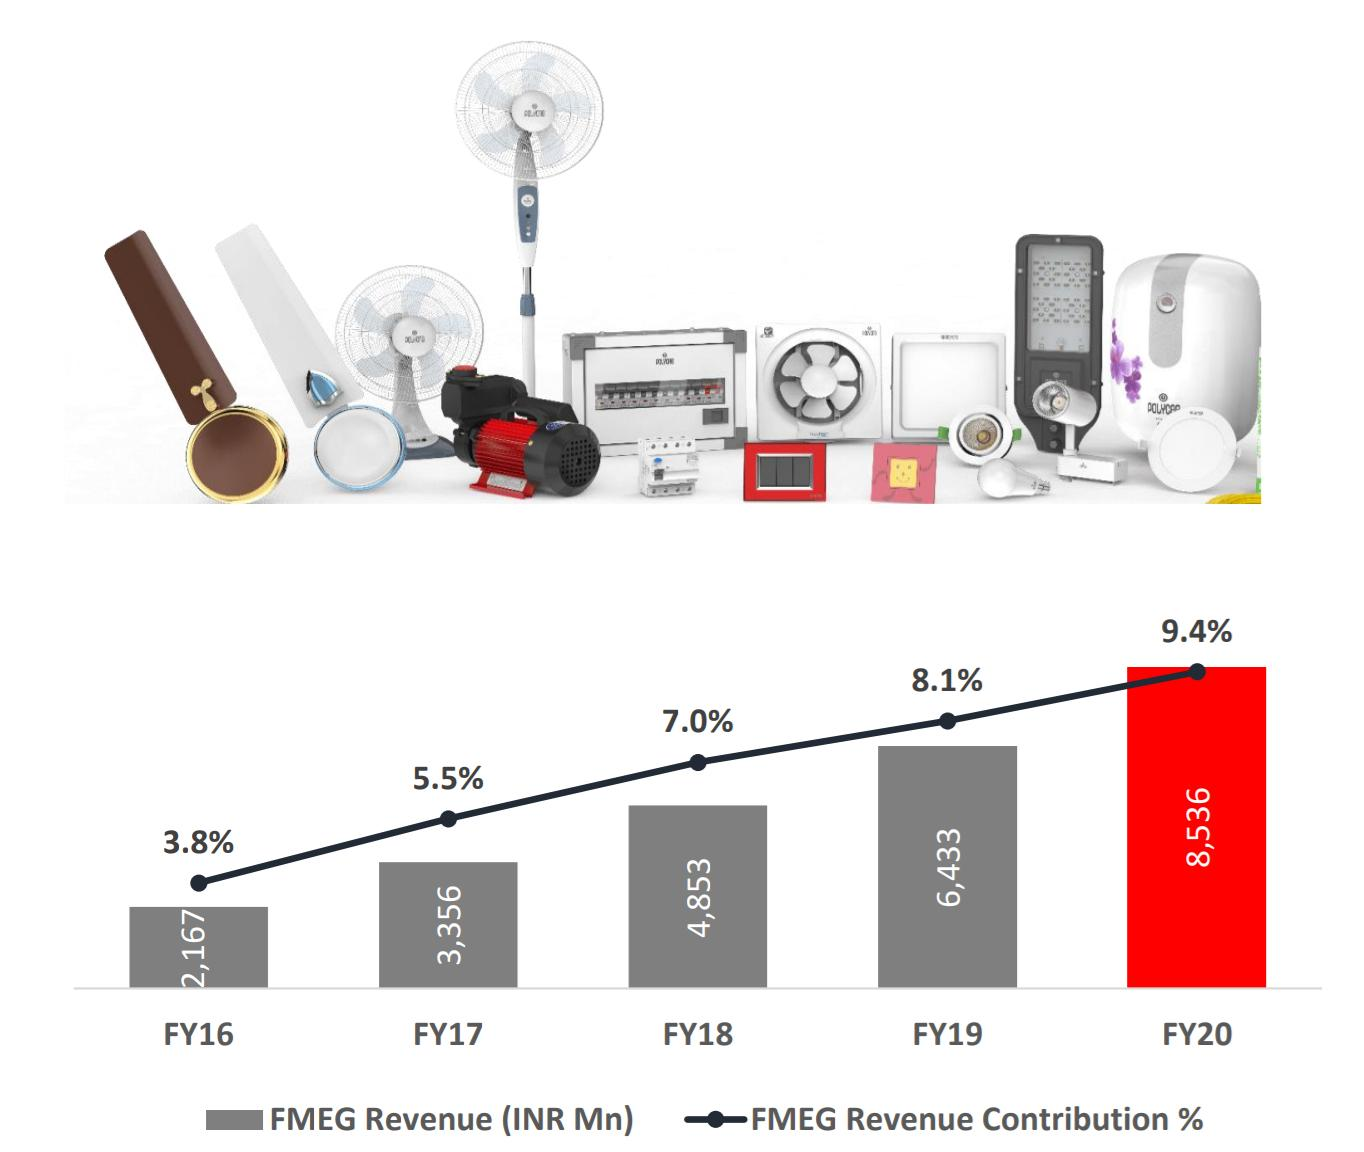 In a change, Havells beats Polycab in Q3 performance